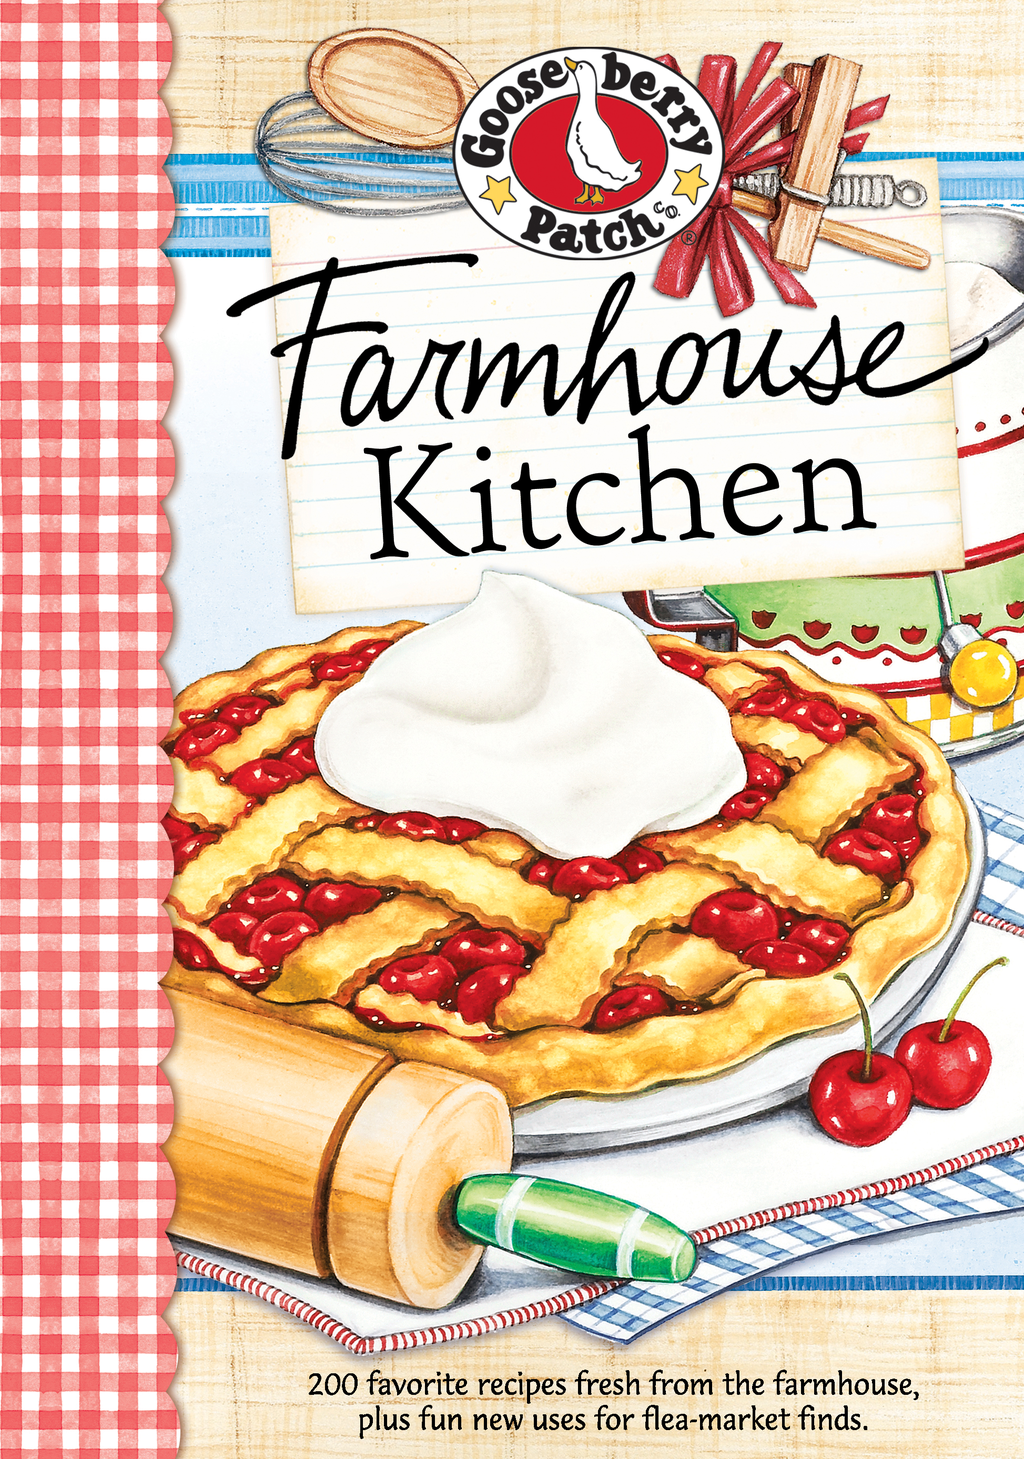 Farmhouse Kitchen: 200 favorite recipes fresh from the farmhouse, plus fun new uses for flea-market finds. By: Gooseberry Patch